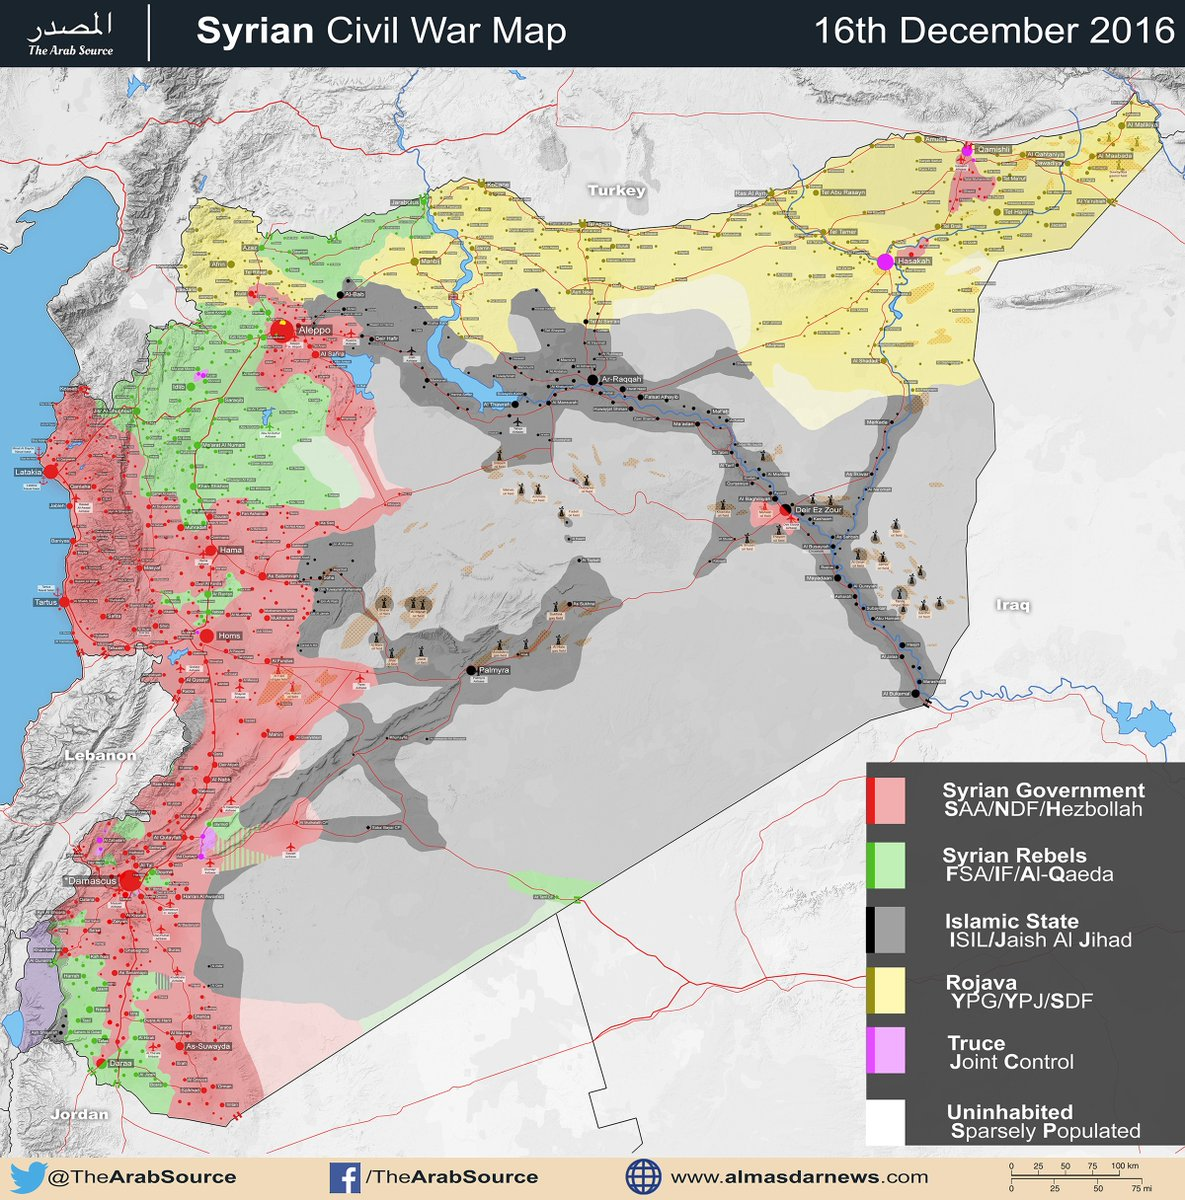 syria-civil-war-map-12-16-2016